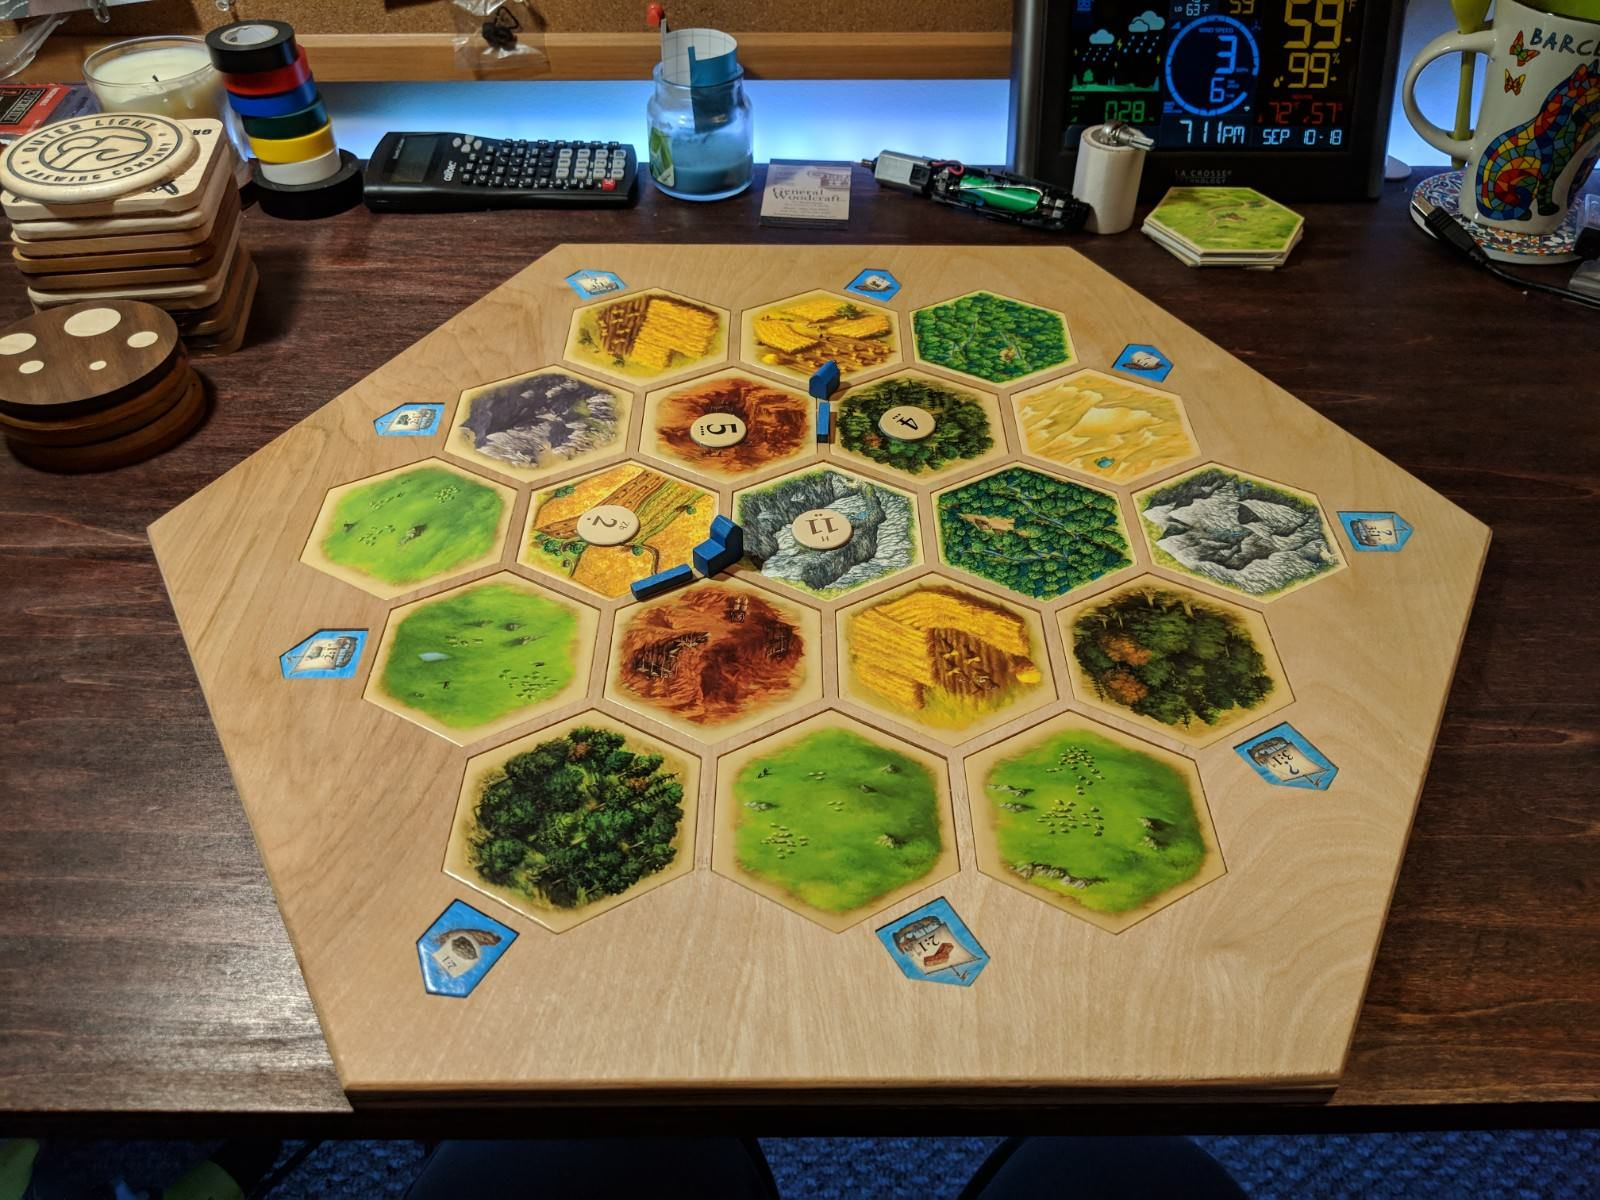 I made a wooden Settlers of Catan board using my CNC ...